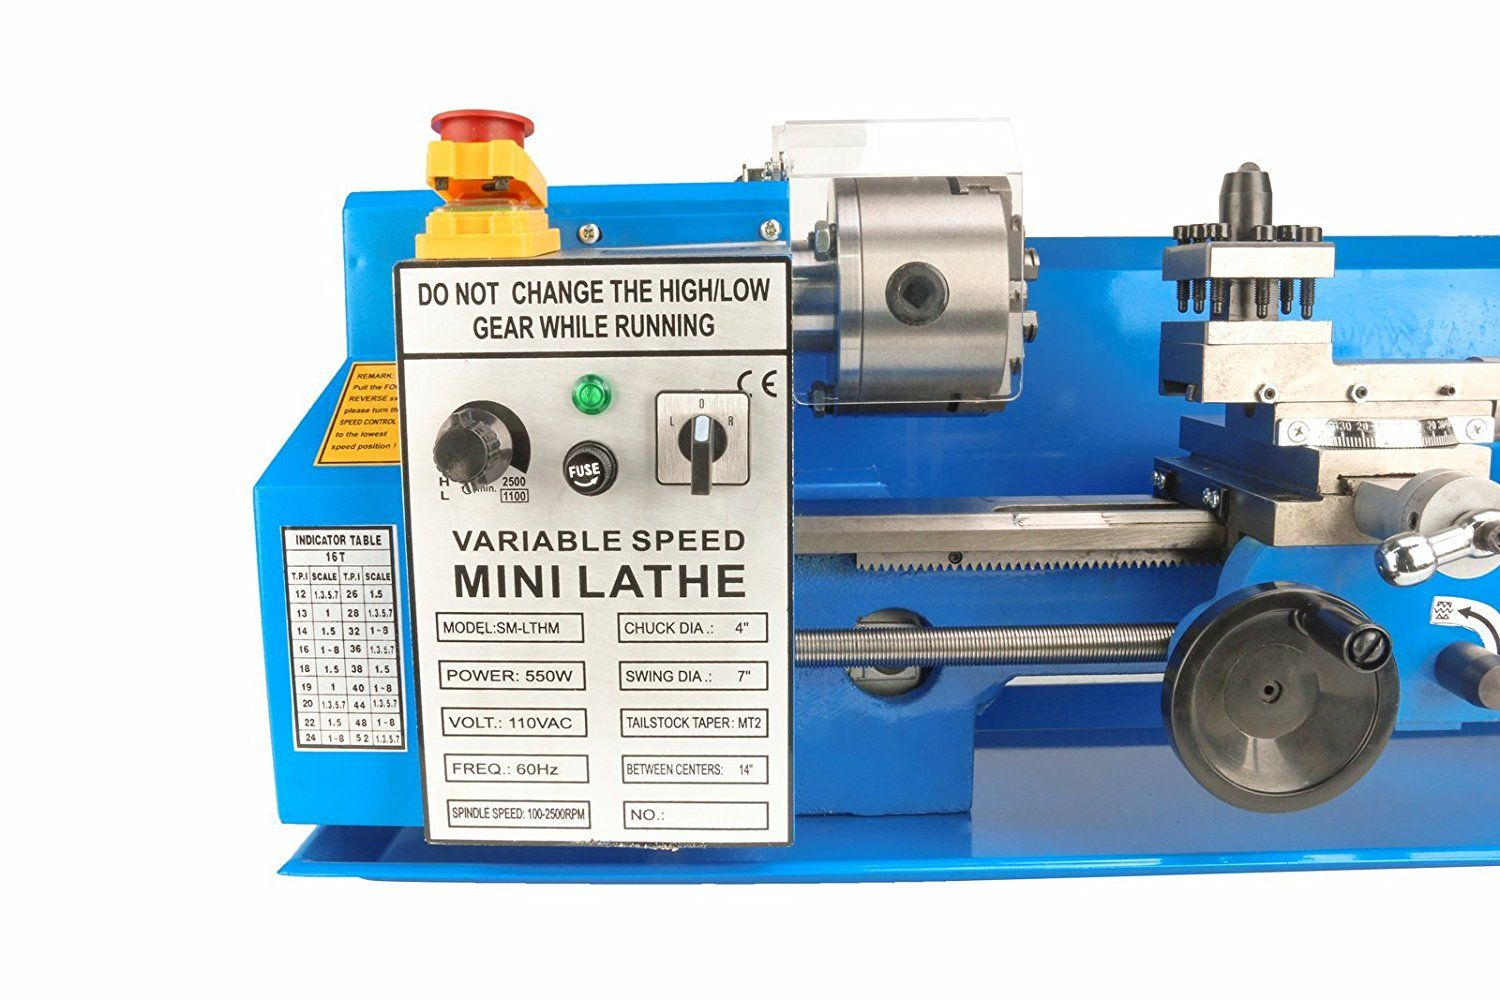 TOP 5 Best Mini Metal Lathes: Reviews & Buying Guide 2018